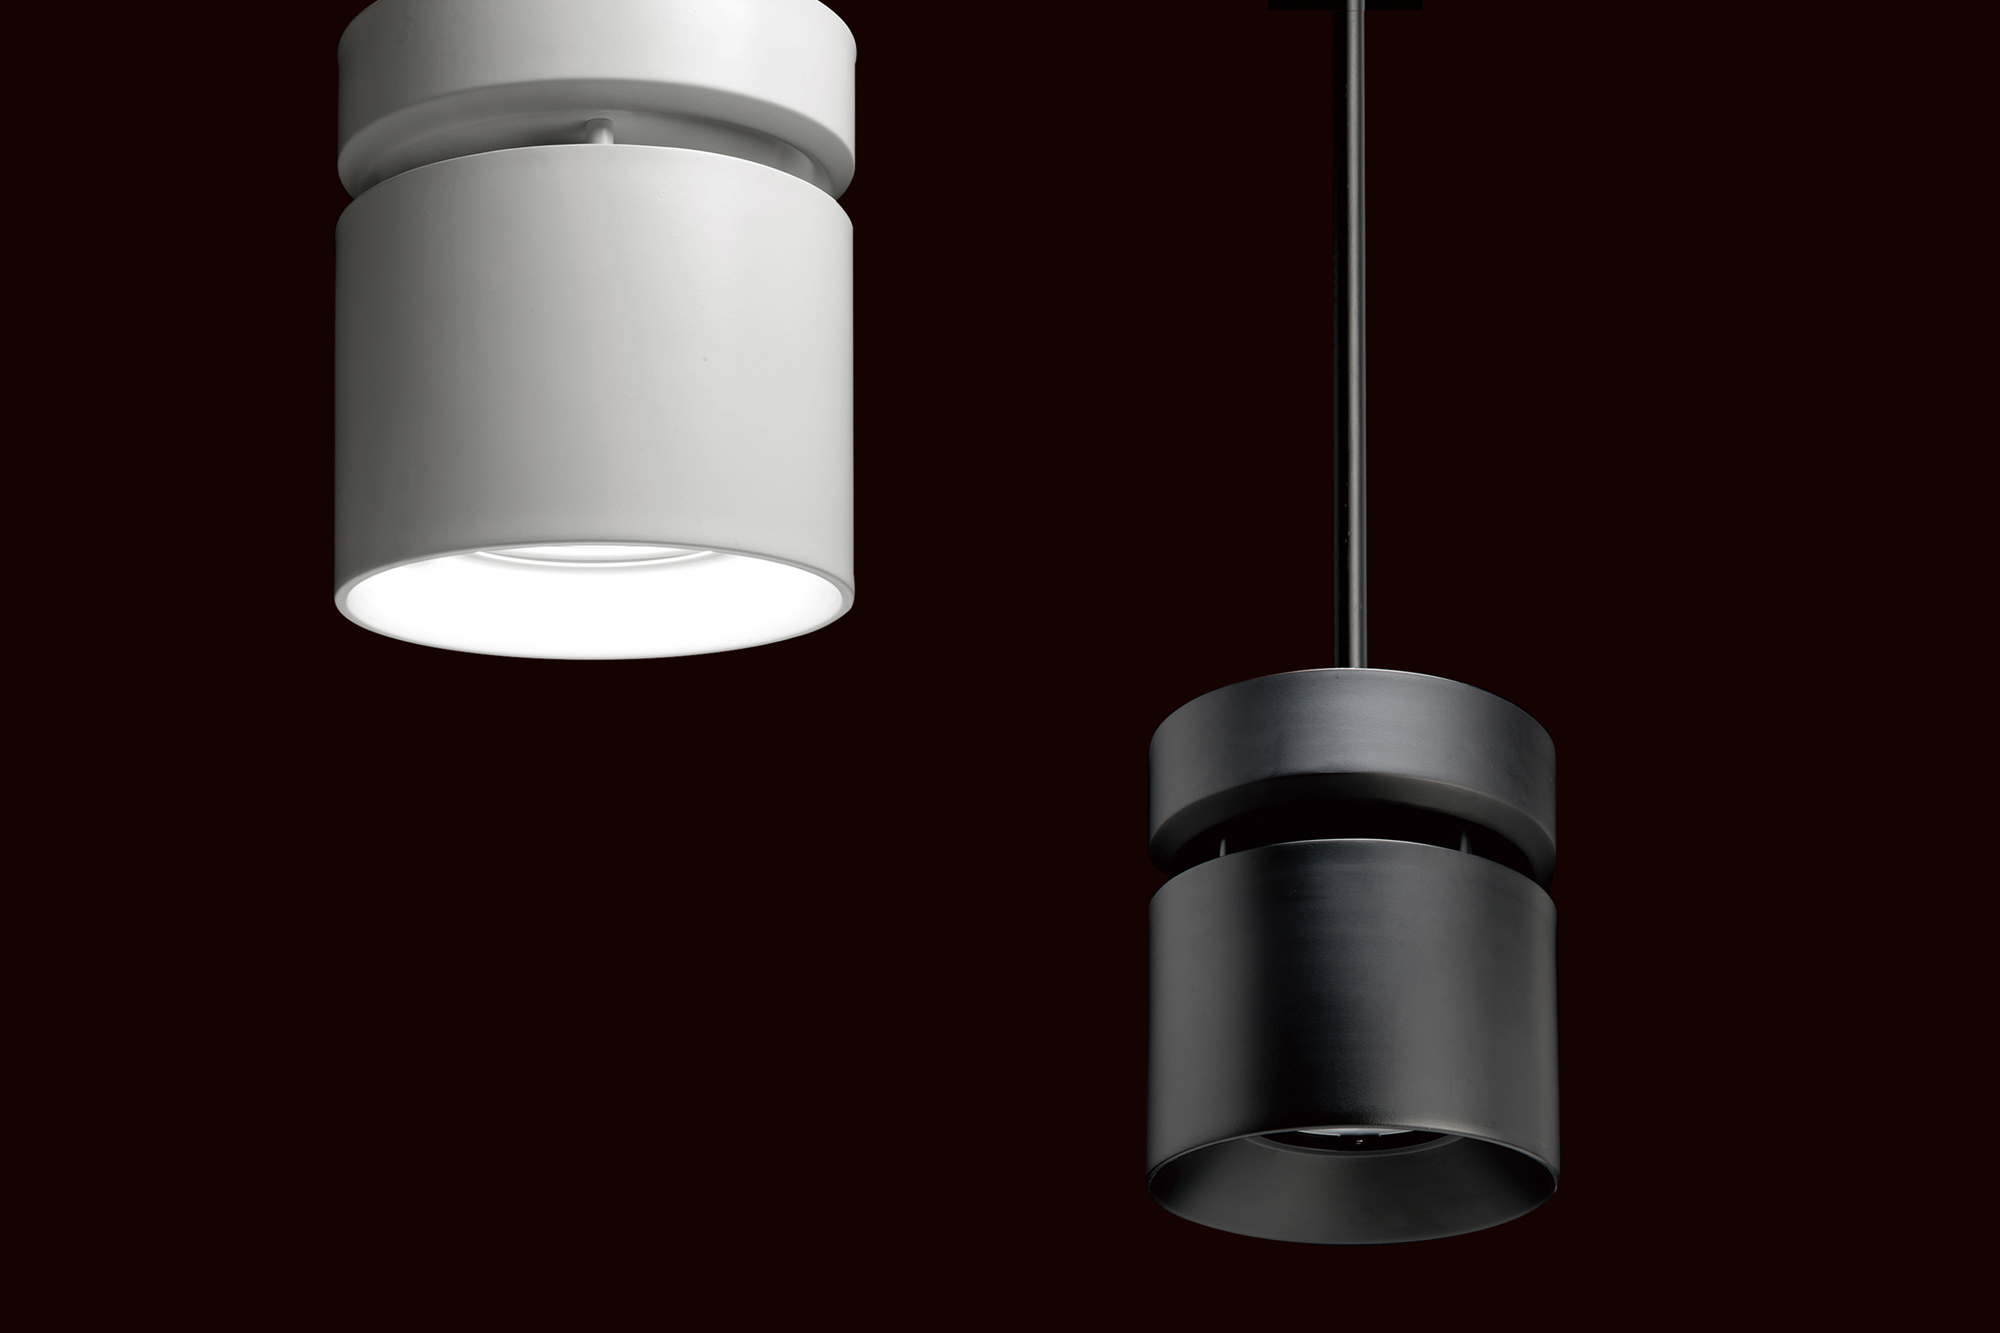 Five Sleek Cylinder Downlights For High Bay Spaces